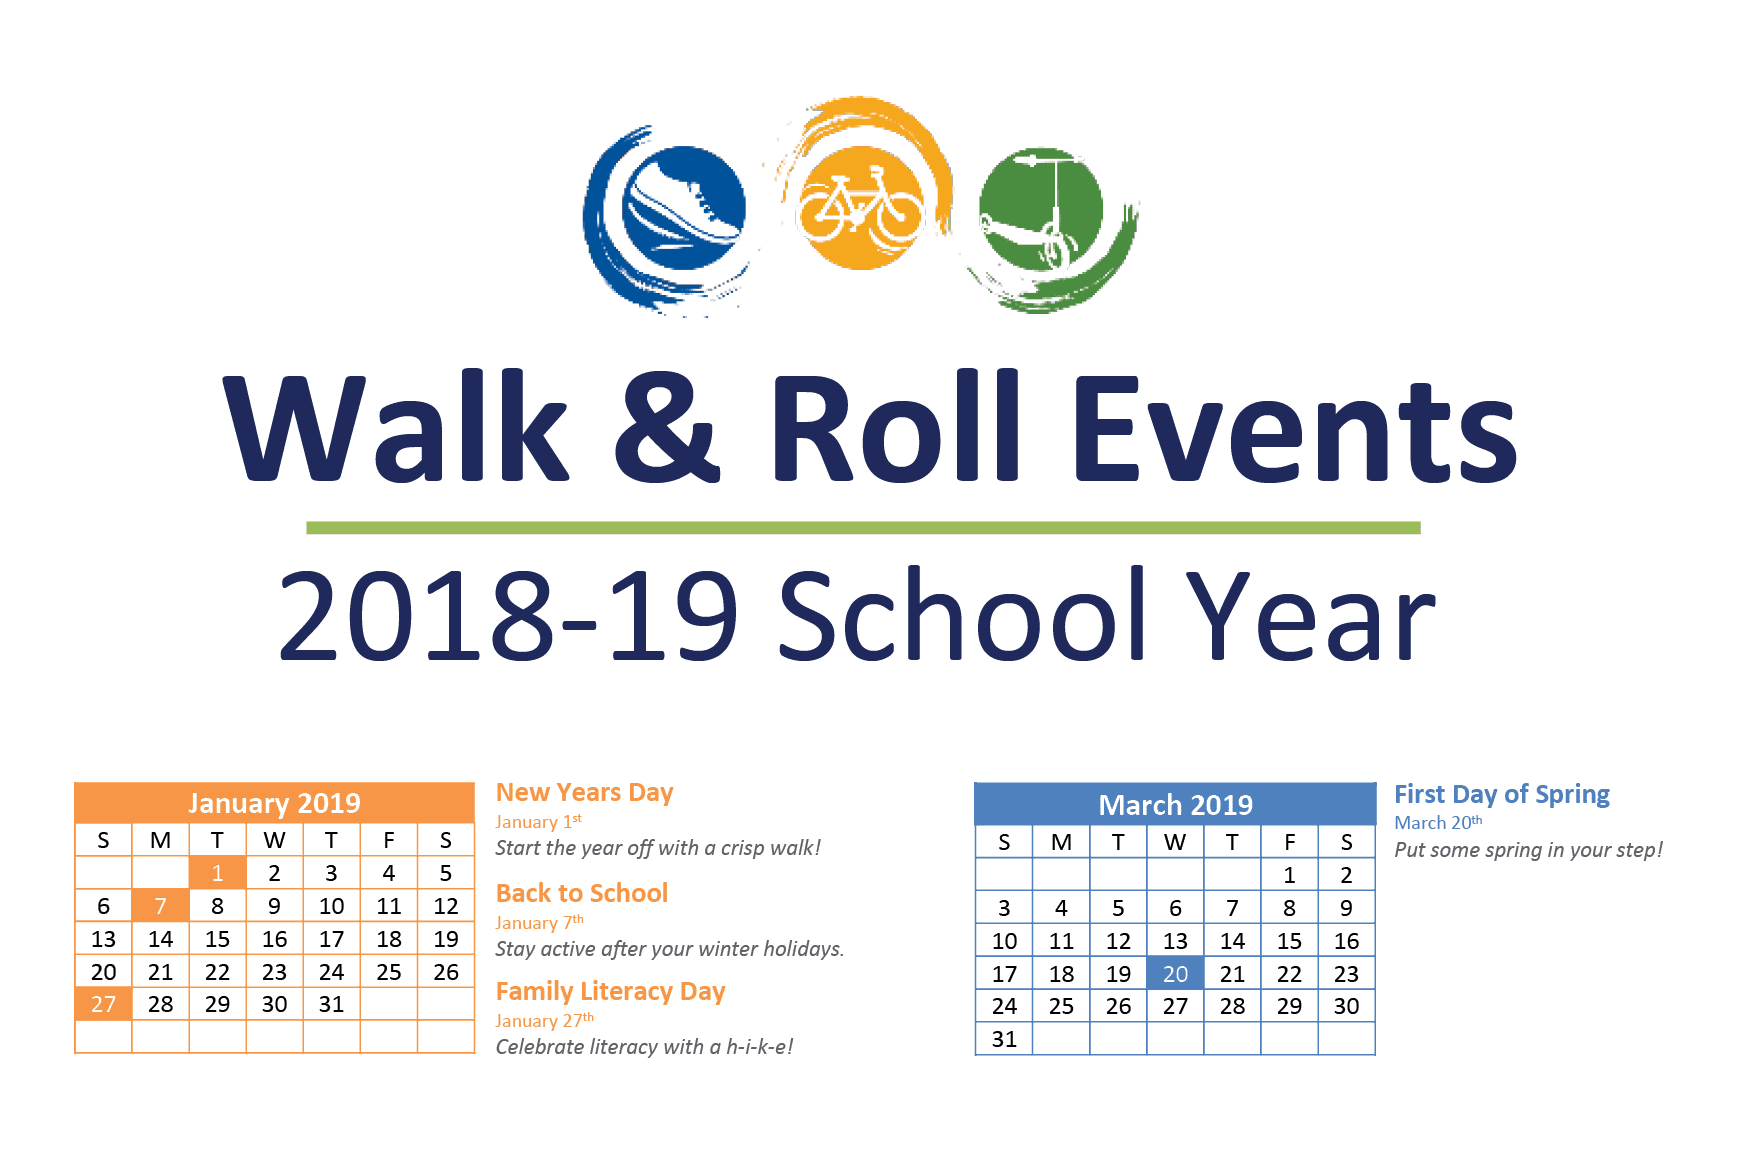 Walk & Roll Events 2018-19